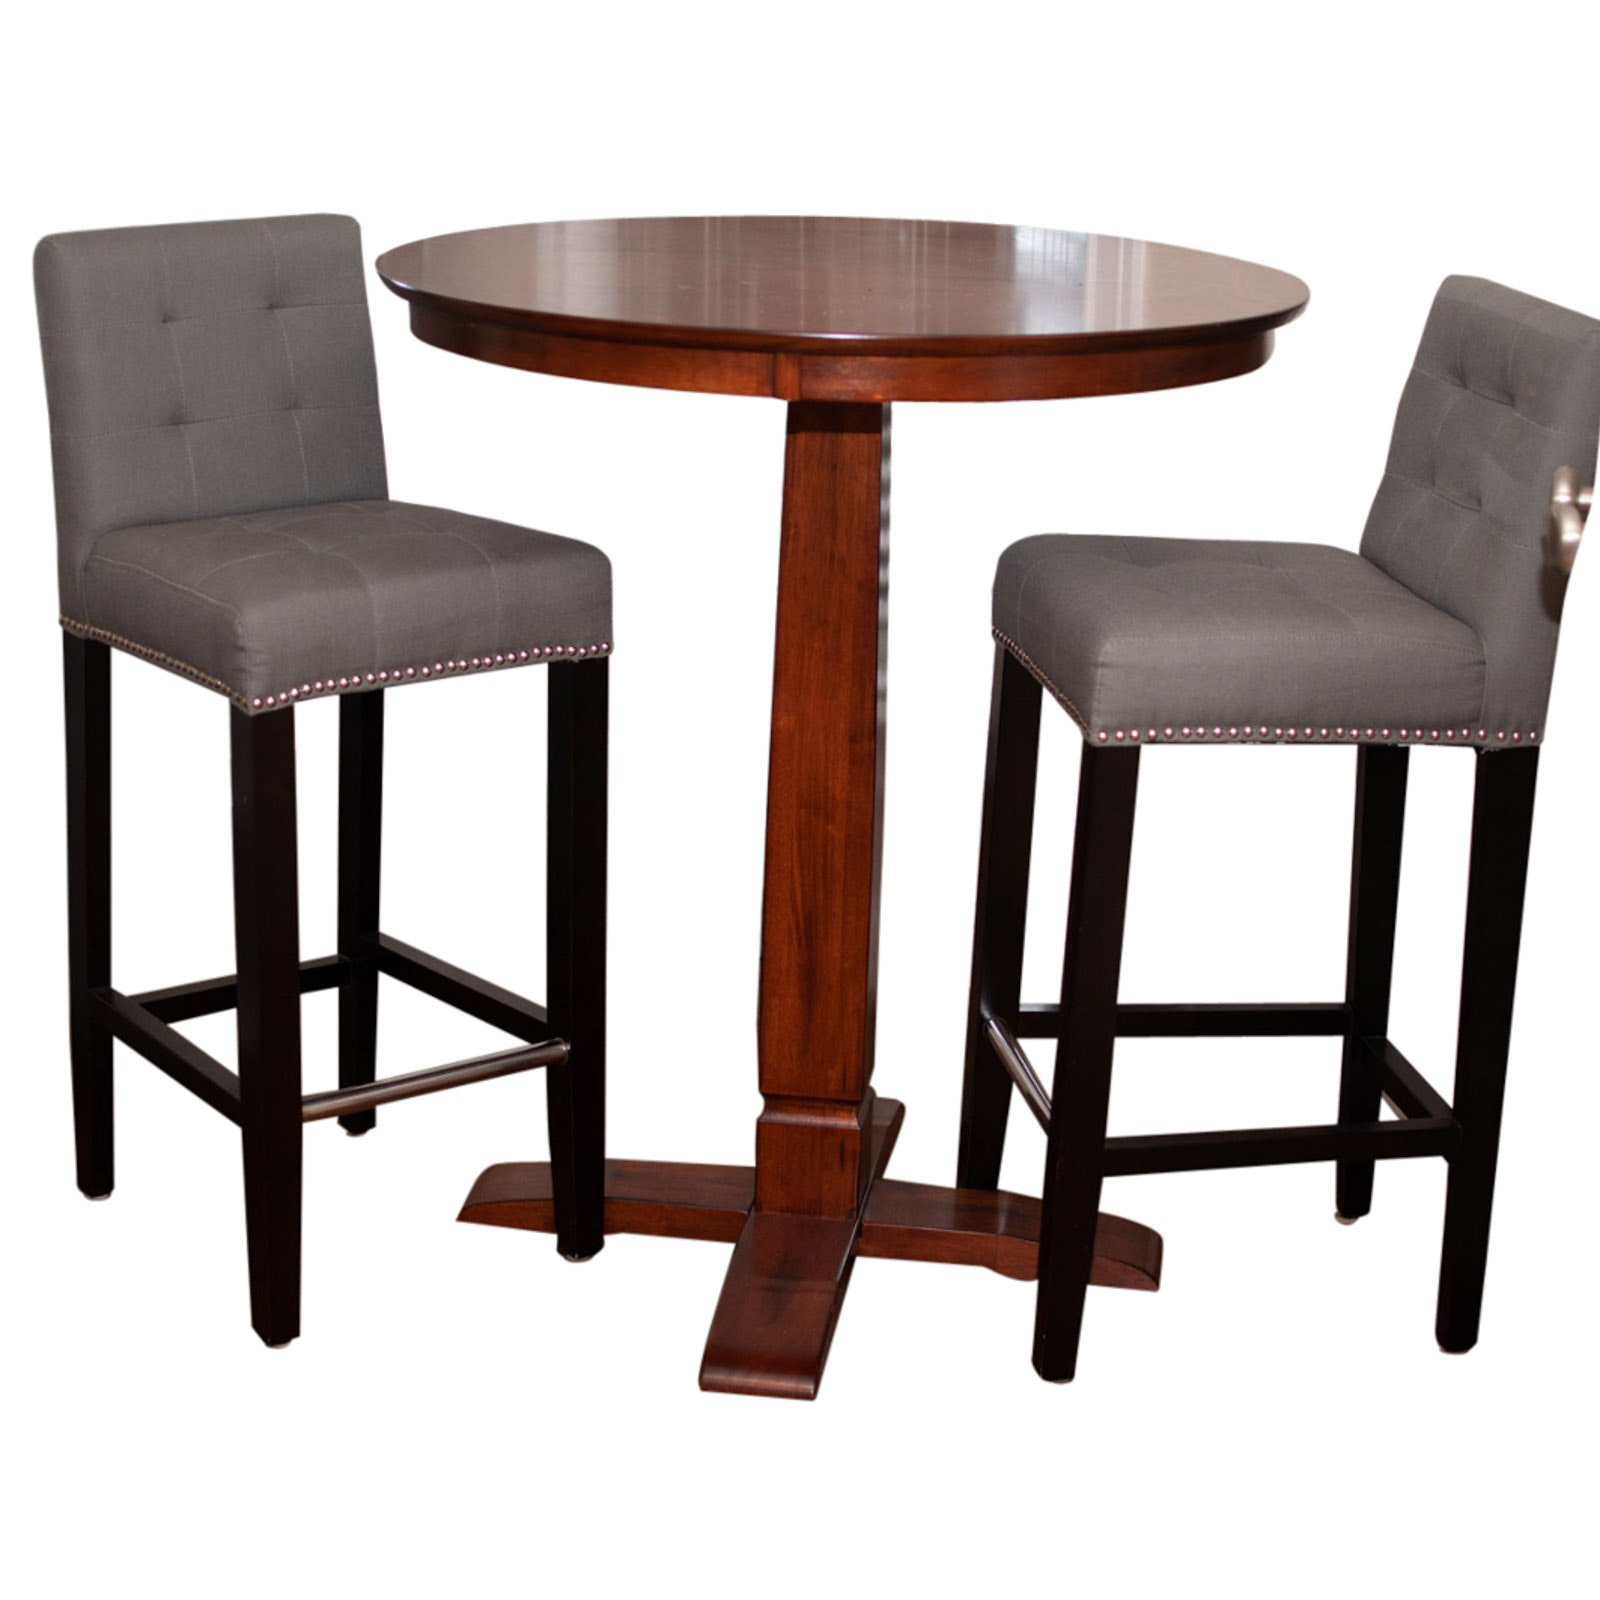 Mahogany High Top Table by Hillsdale Furniture with Two Upholstered Chairs